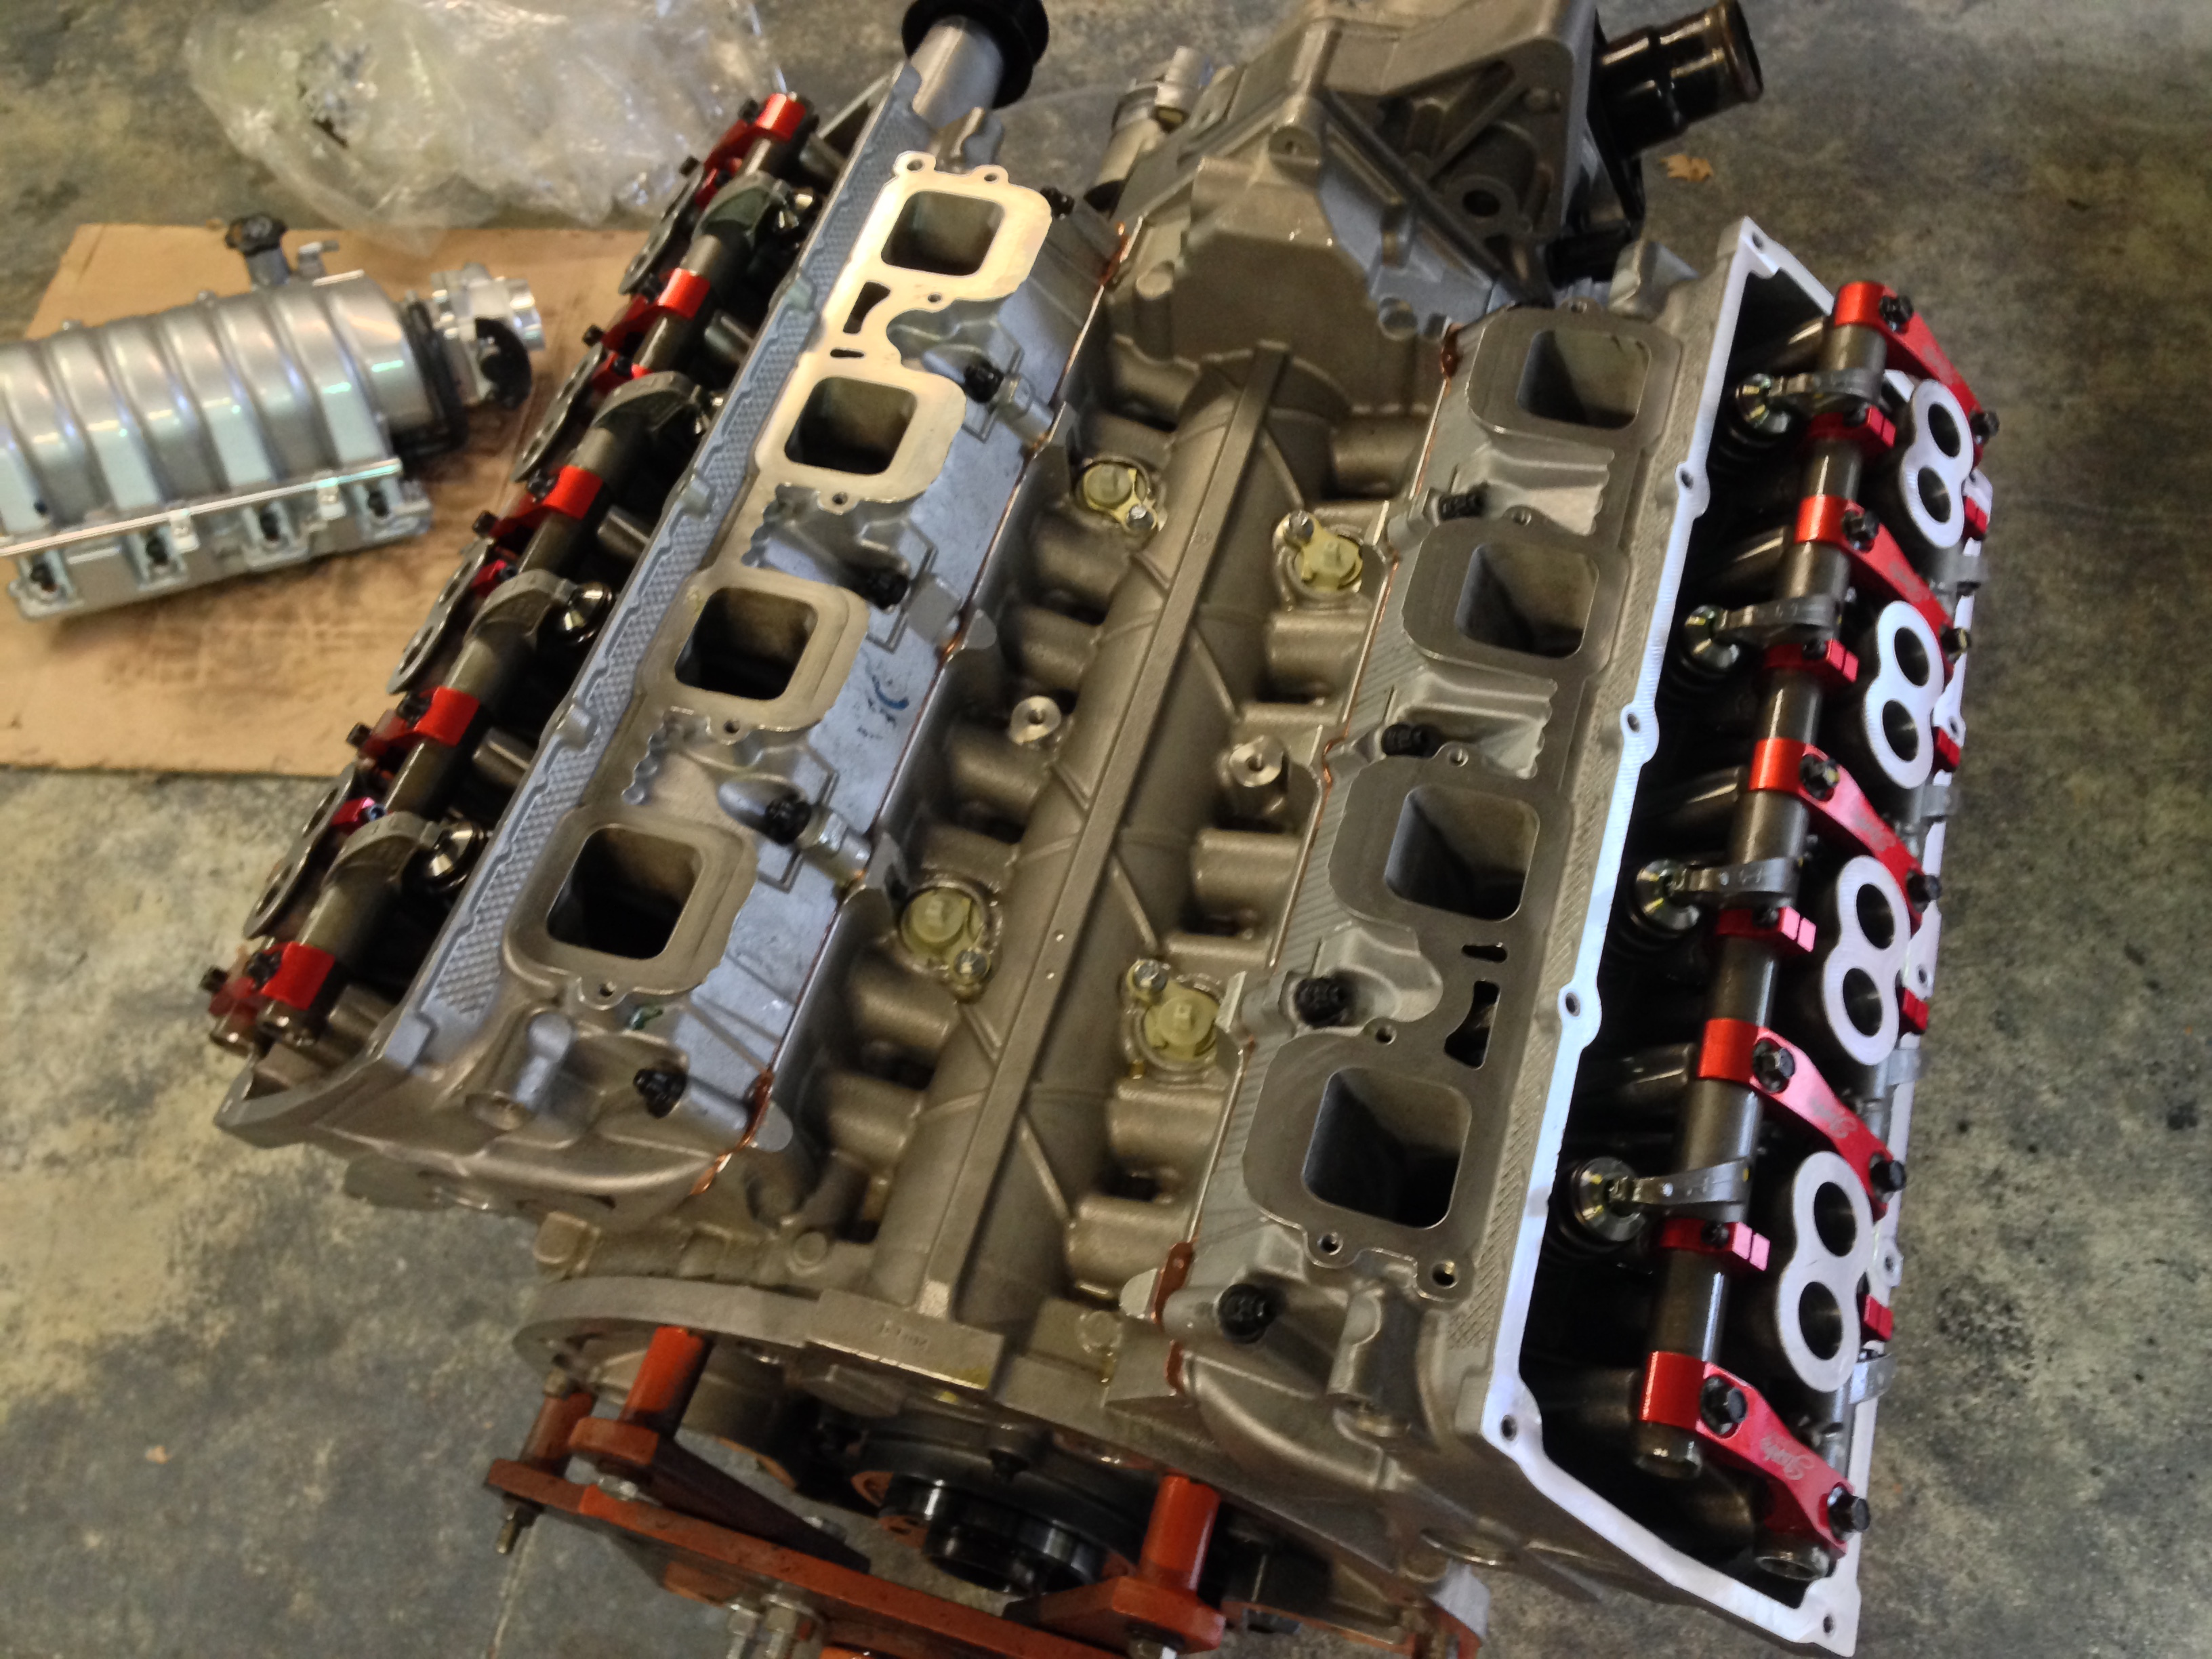 pictures gallery of Hemi stuff - Moparts Forums